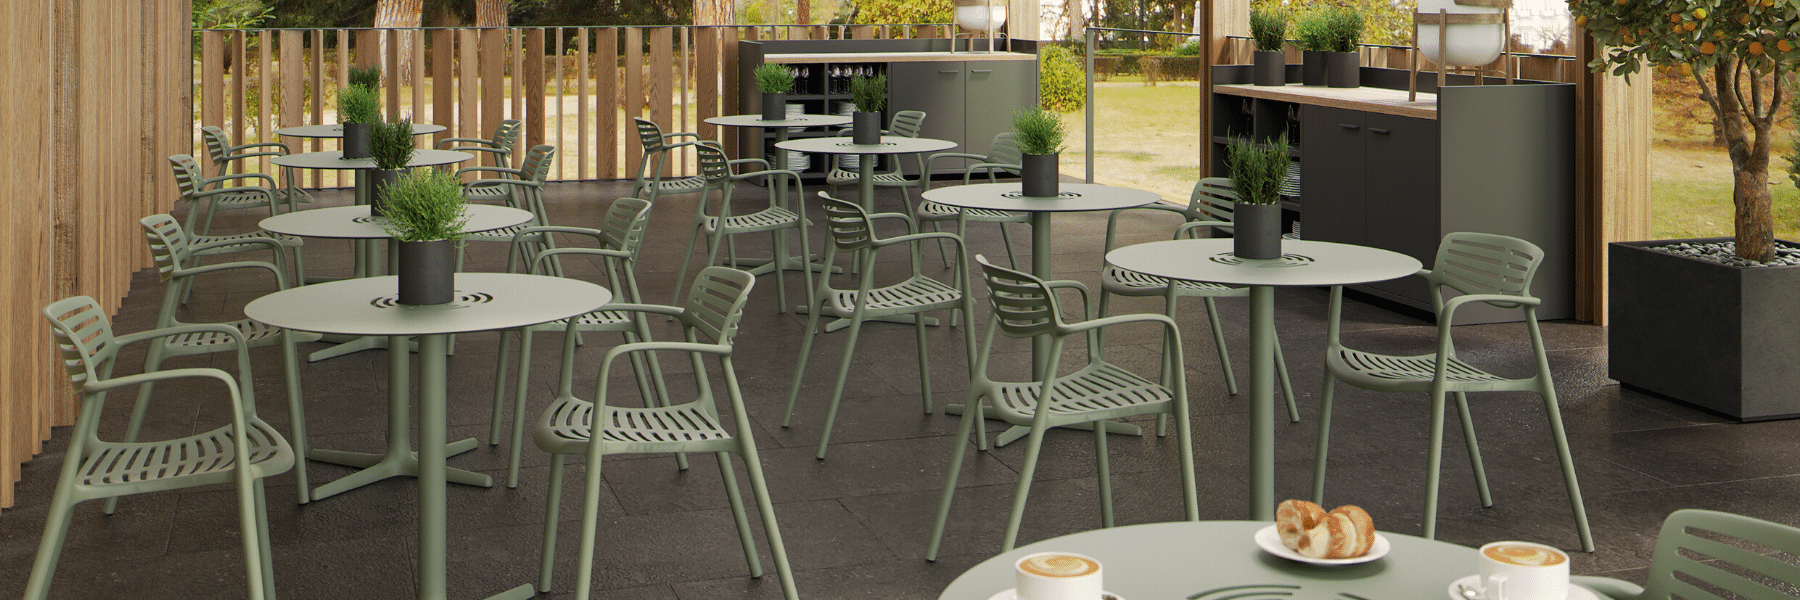 <p>Outdoor Furniture Contemporary Collection – Yuno Commercial Dining Set.</p> <p> </p> <p>Chairs and Tables designed for commercial use indoors and outdoors, capturing essential features such as clear lines, lightness, stability, functionality, ergonomics and care for the environment. Comfort, Modernity, style and durability.</p> <p> </p> <p>Desired by architects designing modern outdoor commercial hospitality dining areas</p>